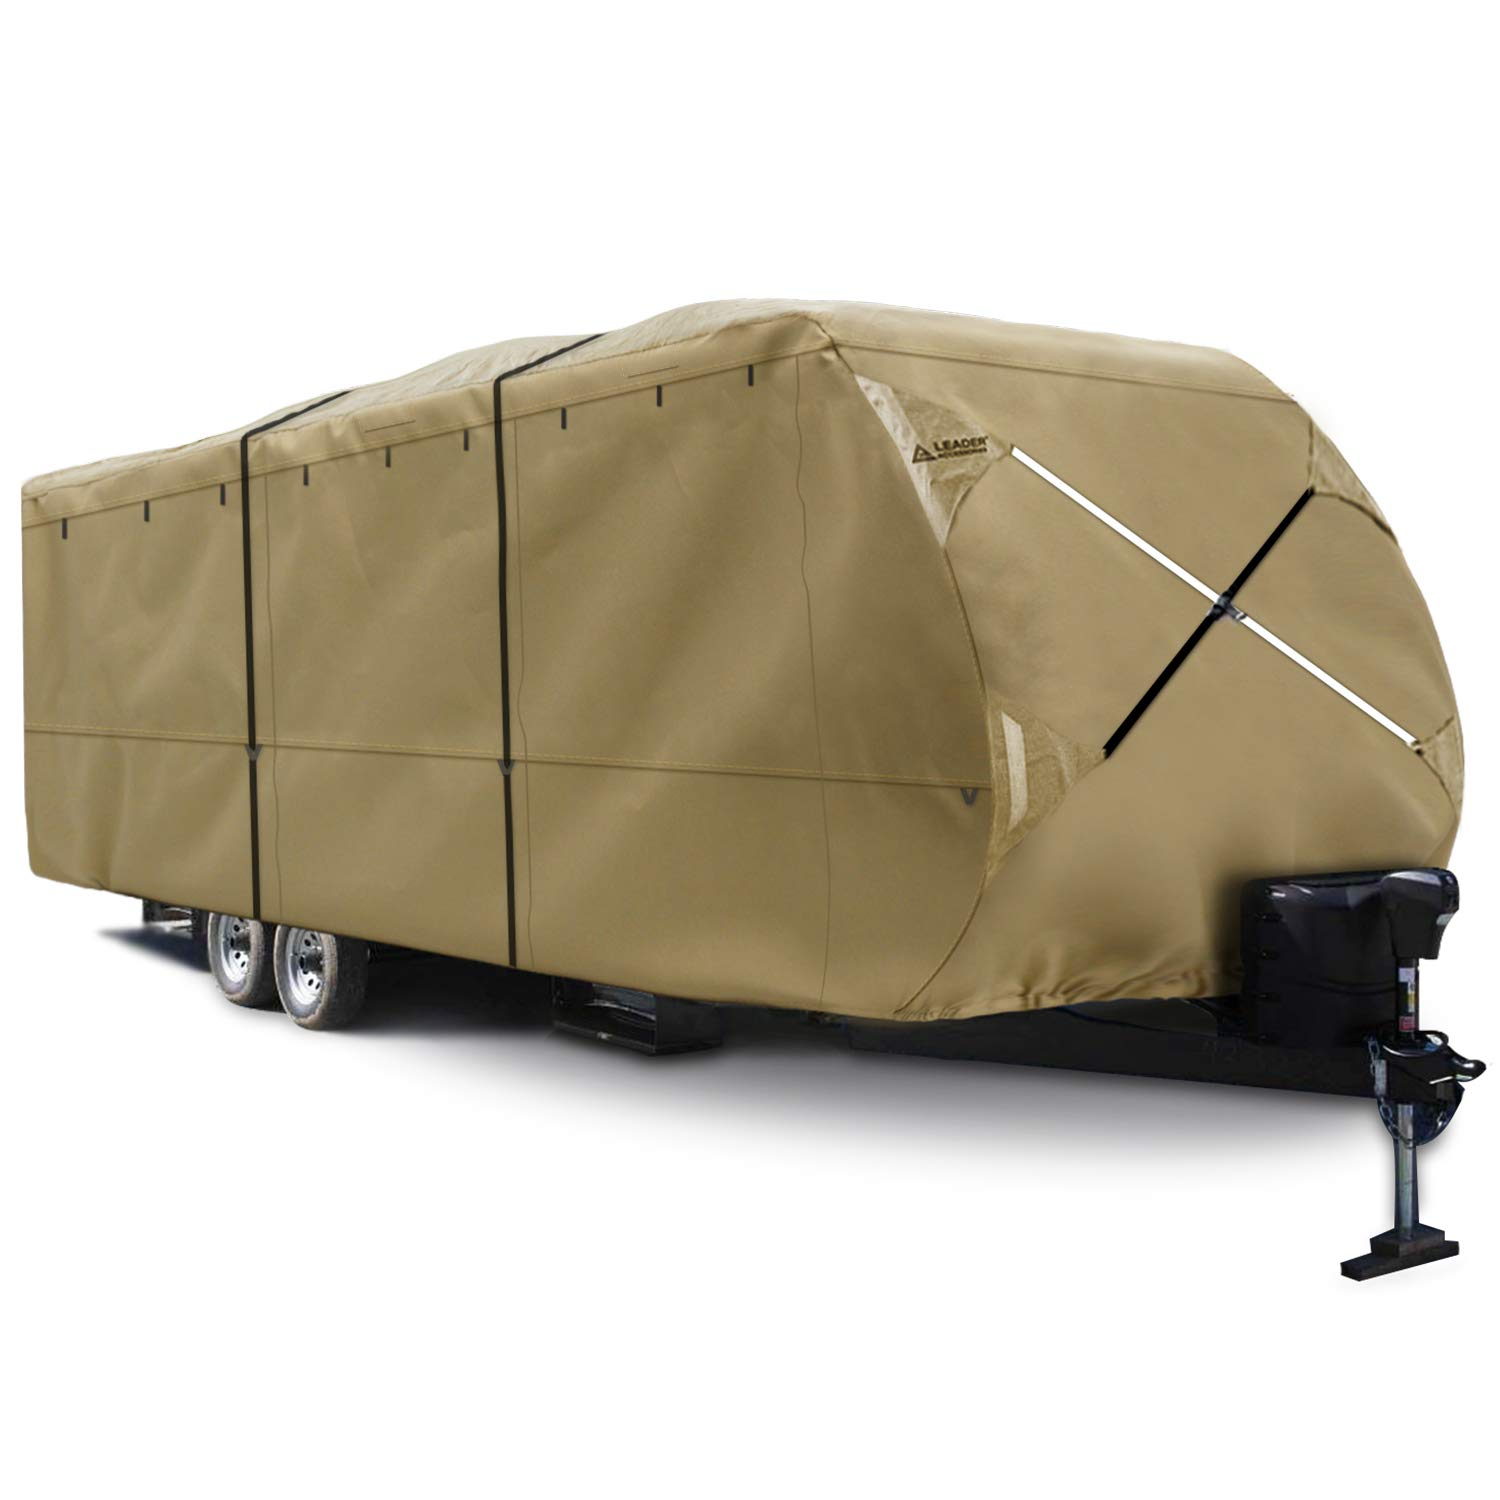 Leader Accessories Premium 300D Upgrade Travel Trailer RV Cover Fits 27'-30' Camper Outdoor Protect Trailer Cover, Beige by Leader Accessories